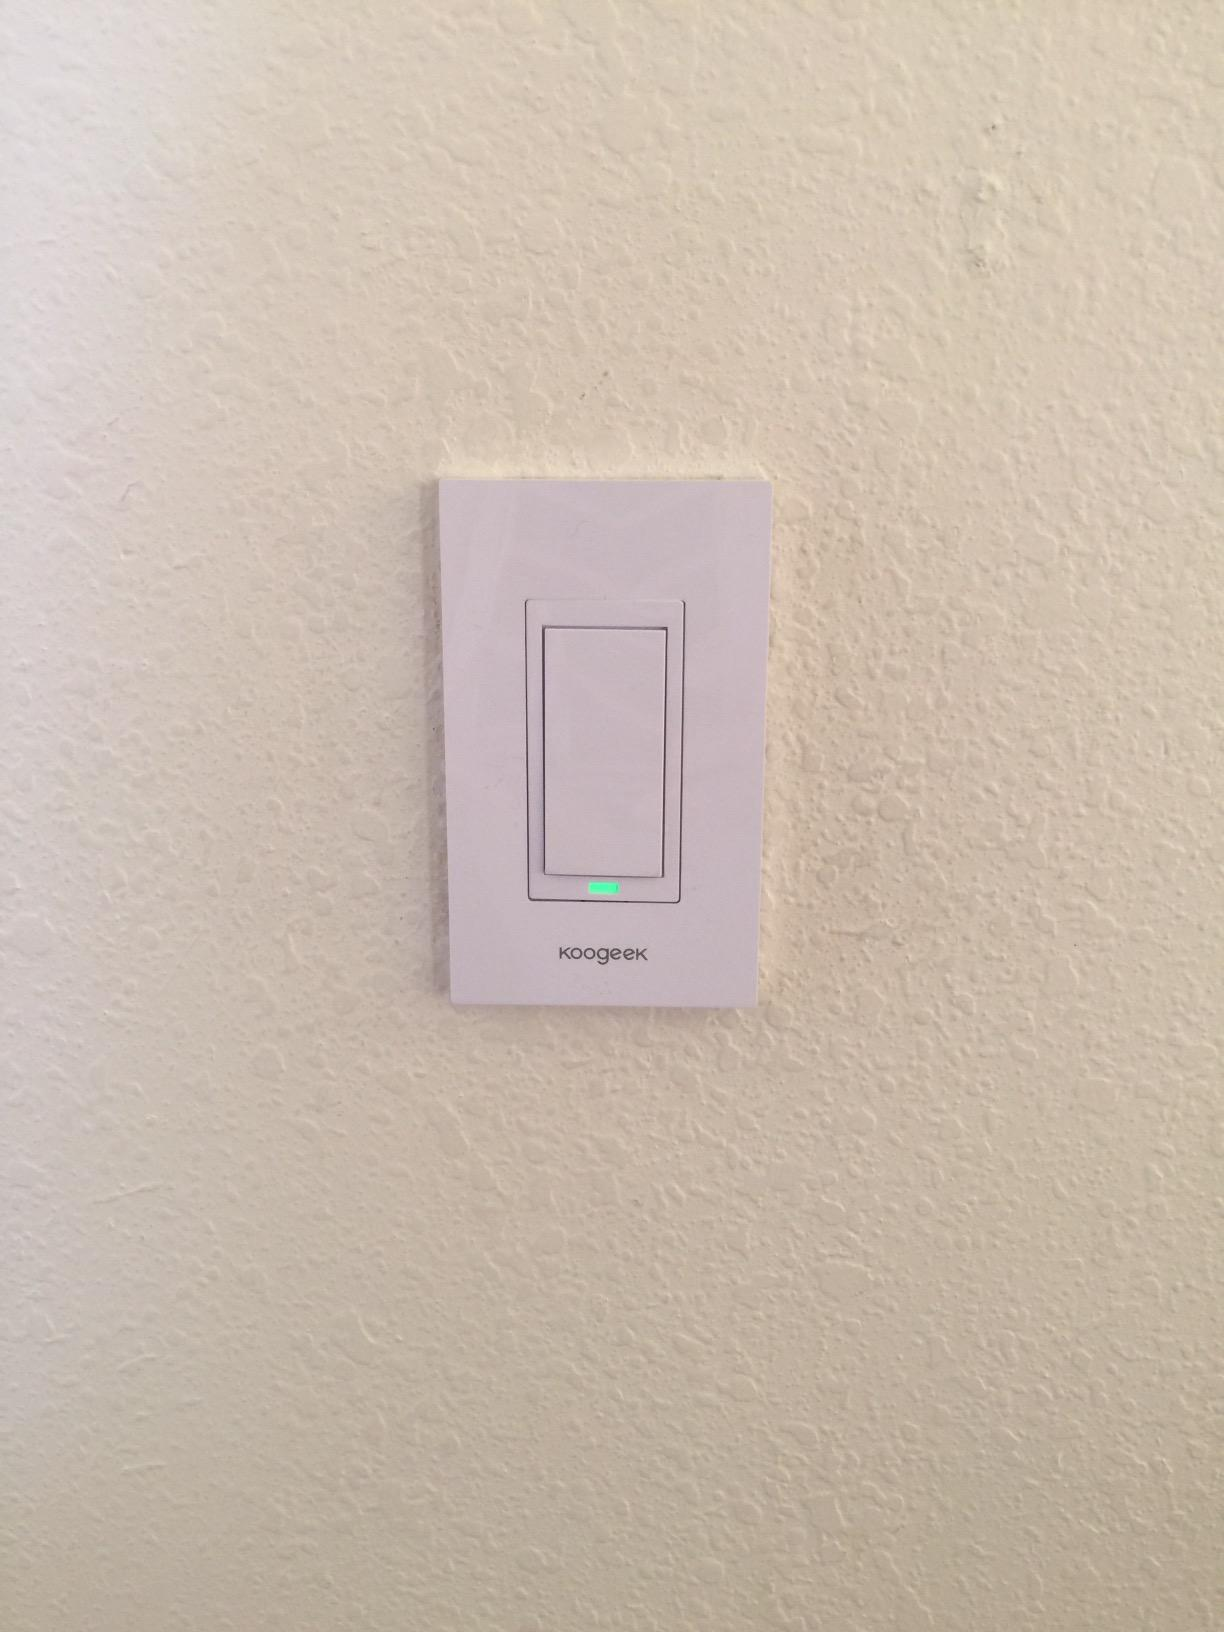 I am now able to switch off my light from my phones and don't have to come  back into the house when my kids forget to turn off the light.